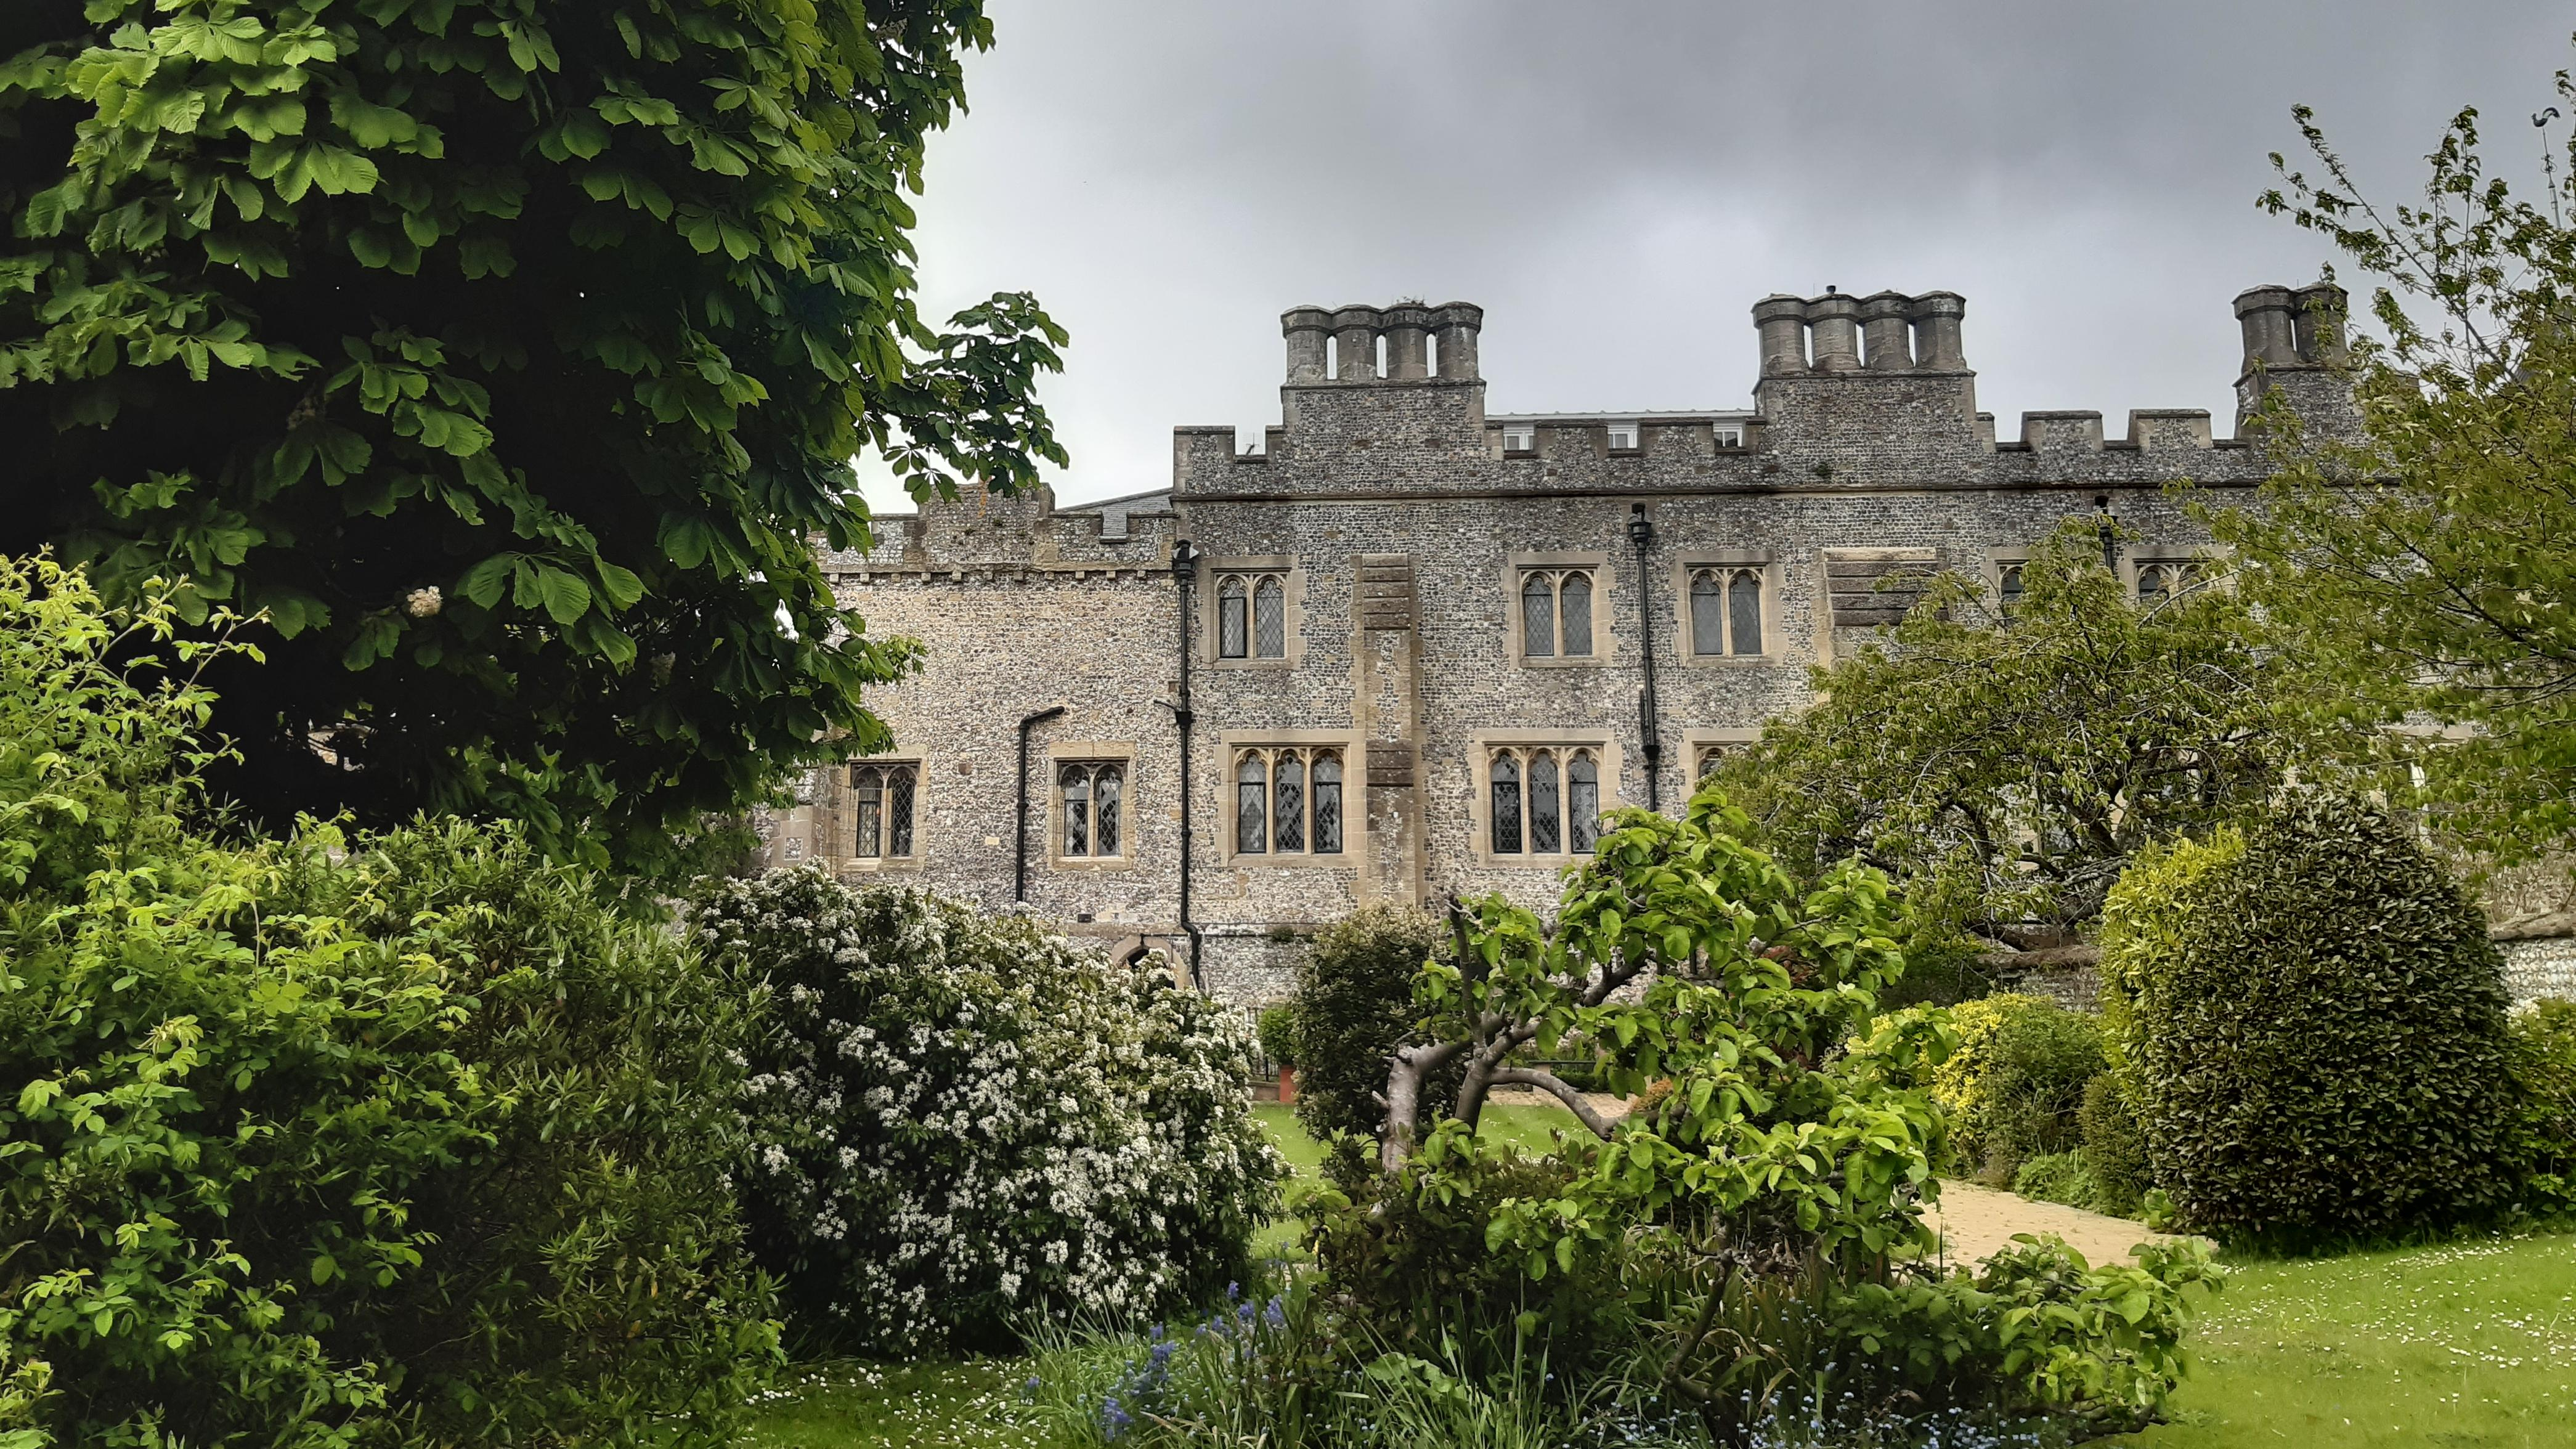 View of St Wilfrid's Priory from the garden